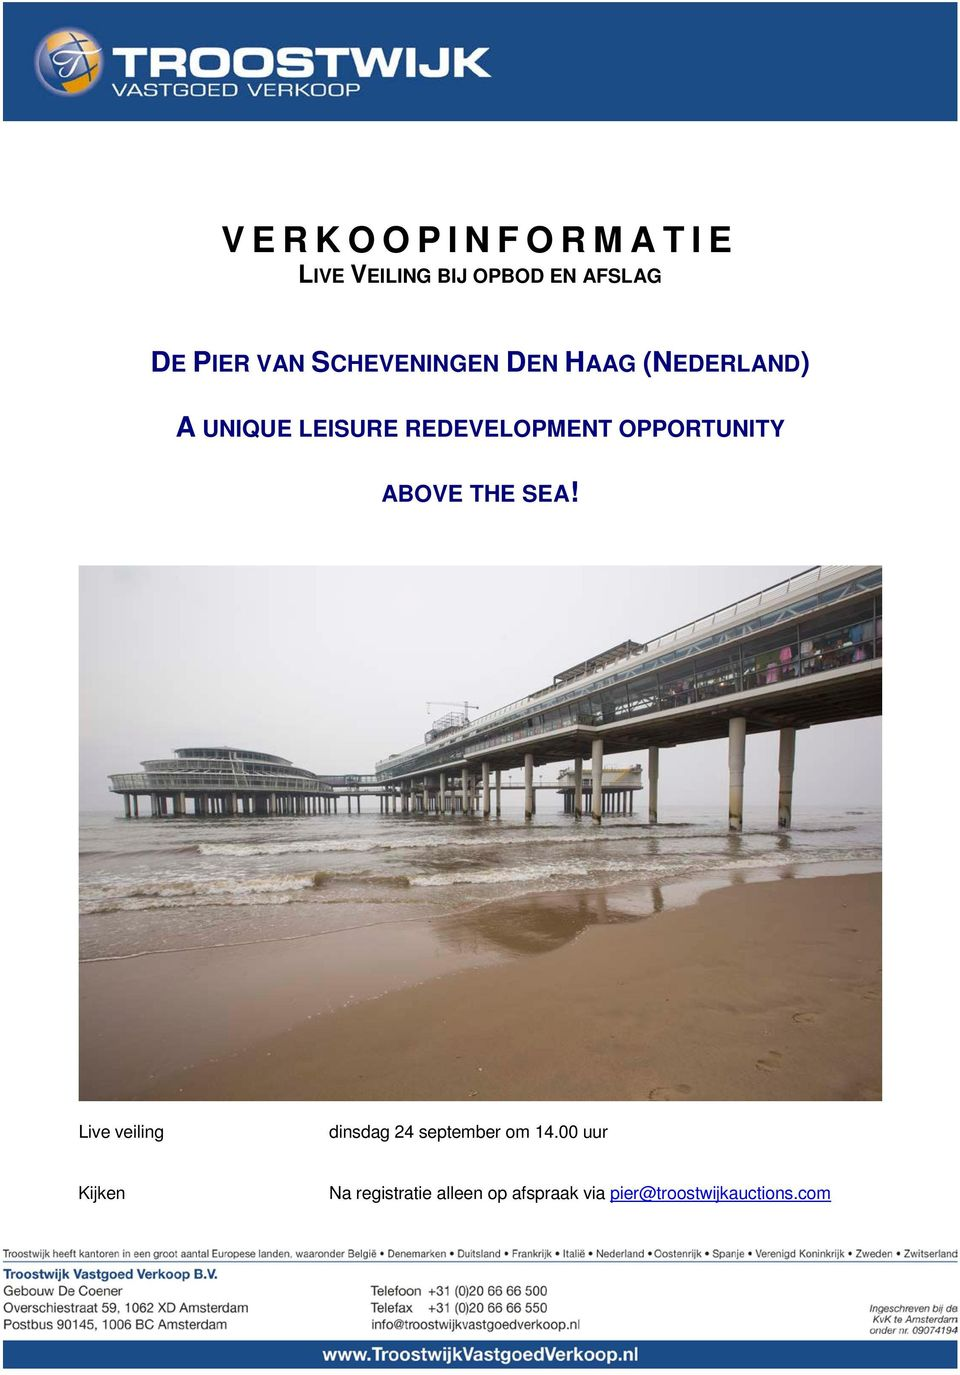 OPPORTUNITY ABOVE THE SEA! Live veiling dinsdag 24 september om 14.